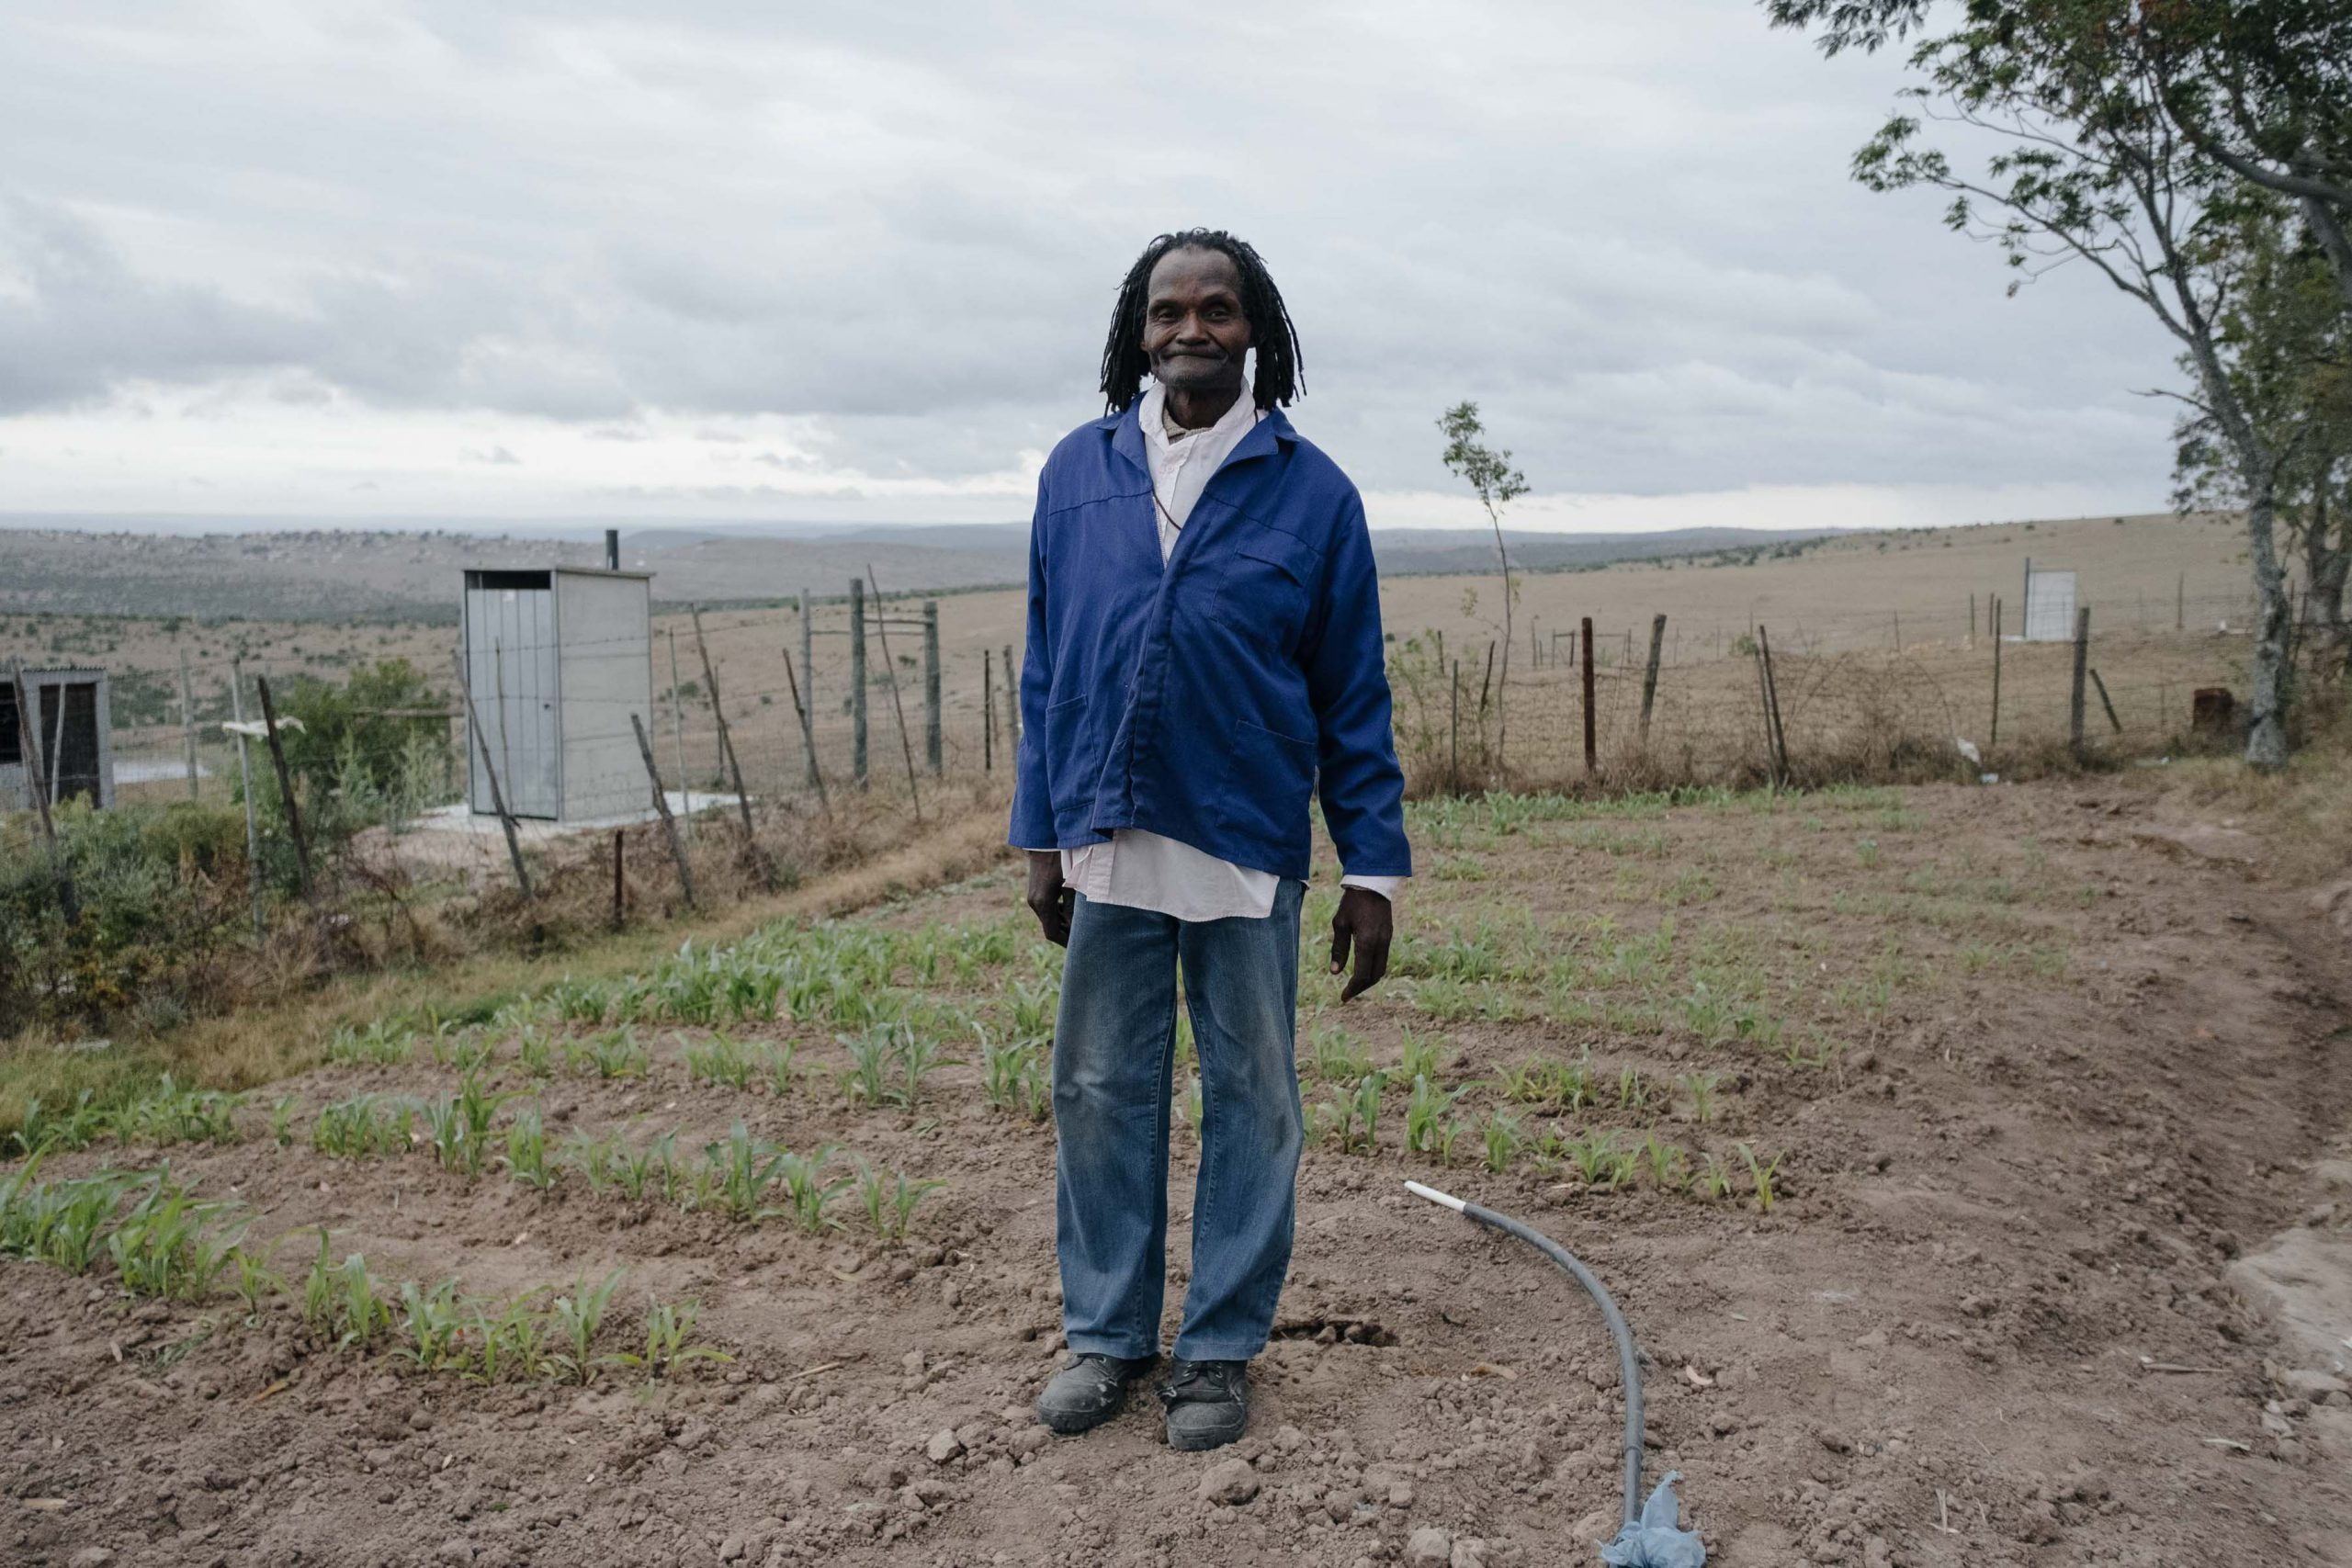 10 November 2019: Subsistence farmer and traditional healer Goodman Bhacela, 70, at his homestead in Ngqwele Village in the Eastern Cape. Unpredictable and insufficient rainfall has forced him to rely on municipal tap water to save his crop.